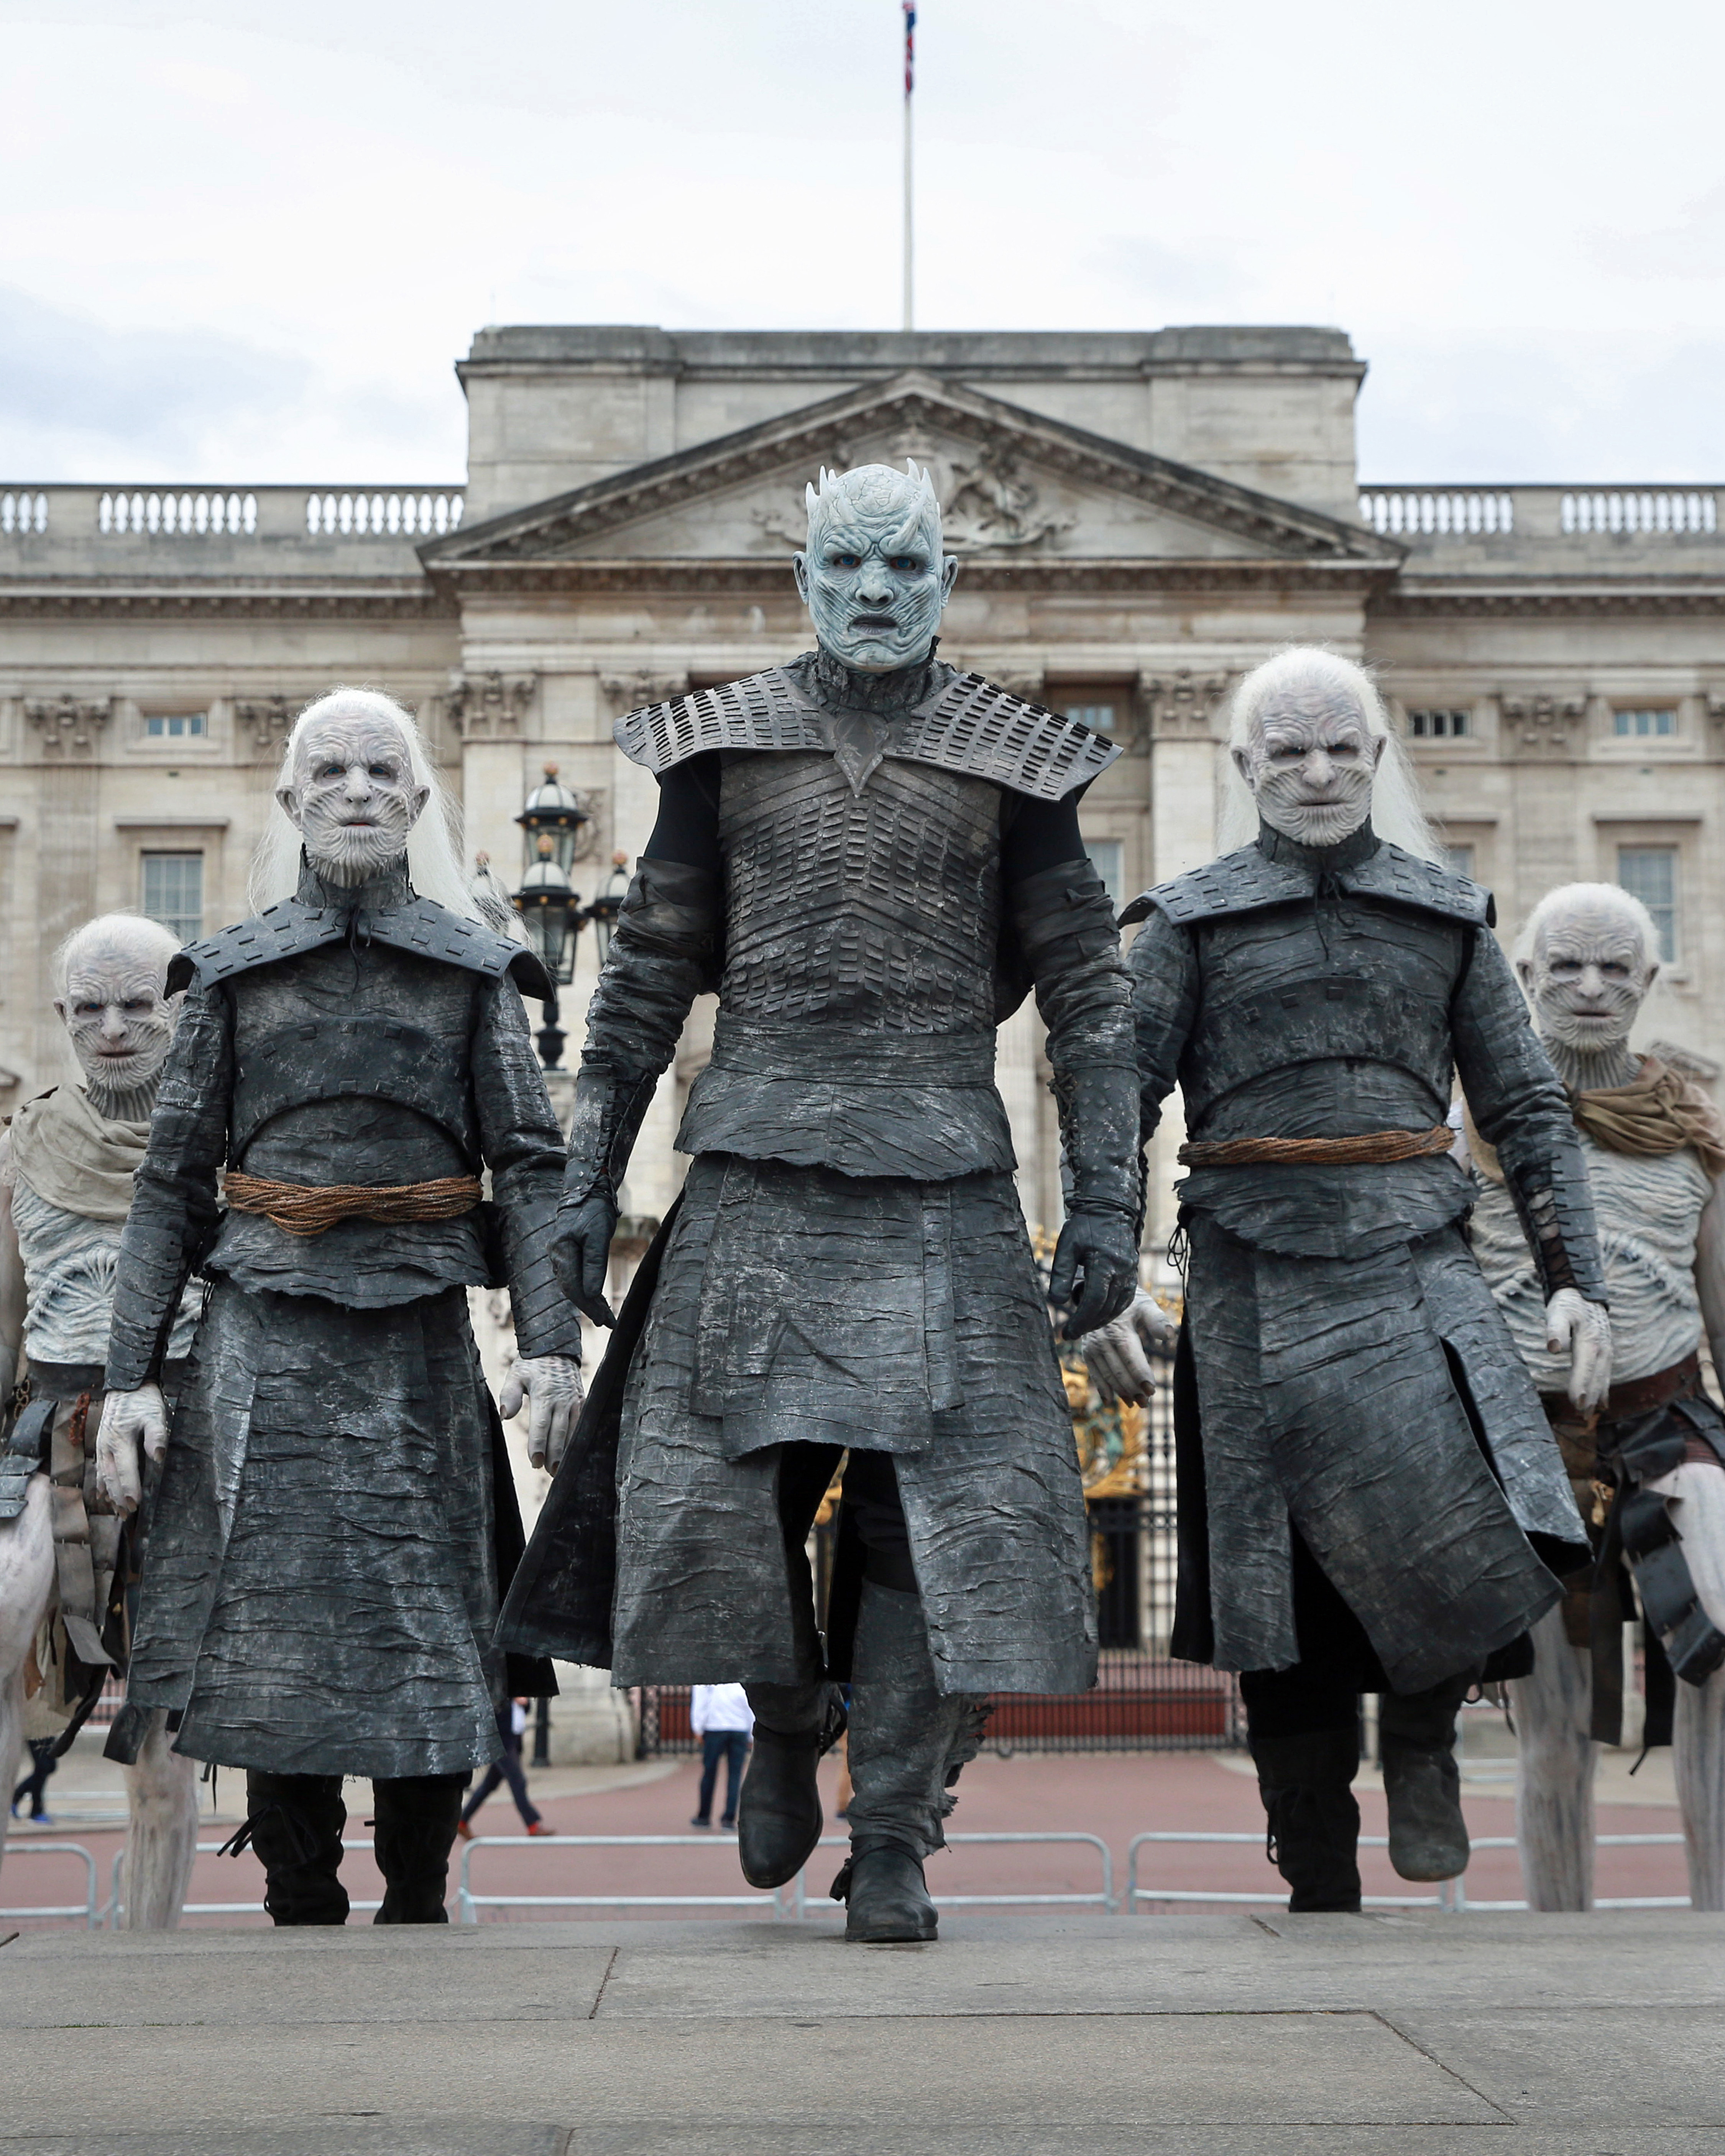 Five models dressed as 'White Walkers' from Game of Thrones, led by the 'Night King' on horseback, walk in front of Buckingham Palace in London